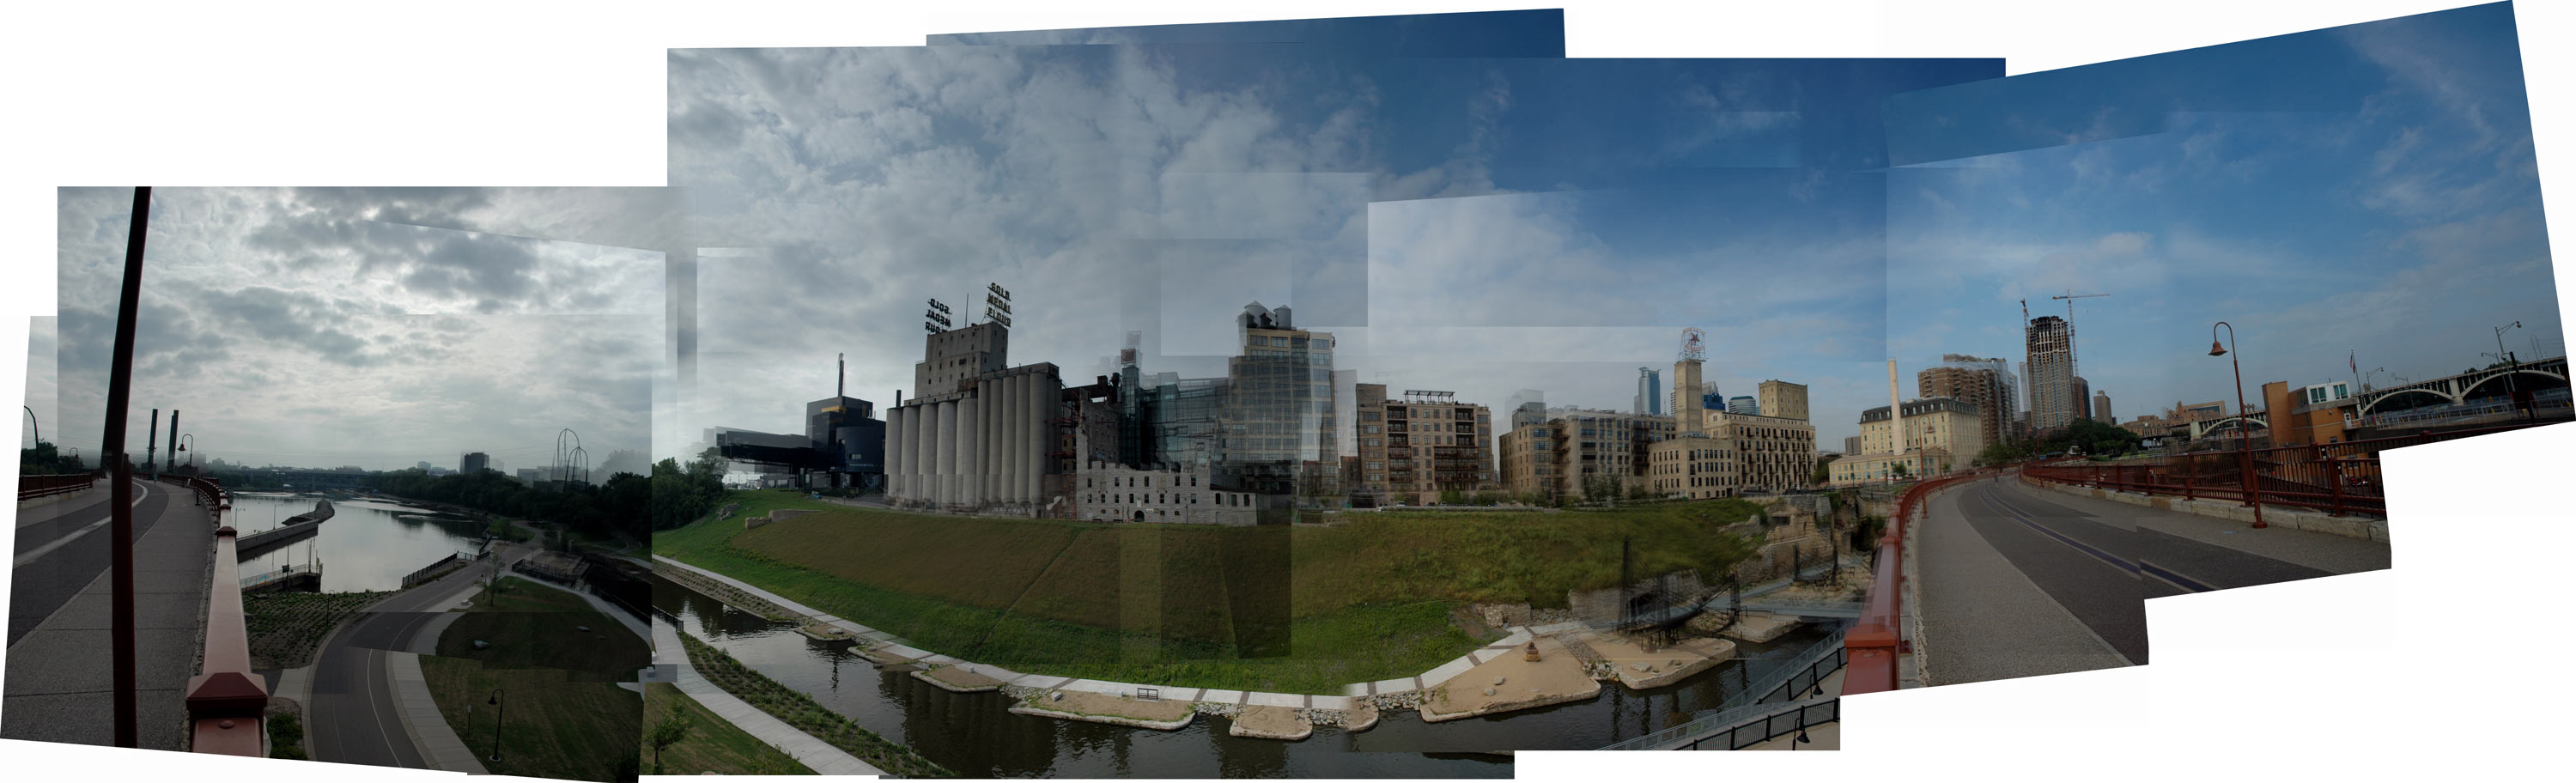 Panorama of Mill City Museum and surrounding area